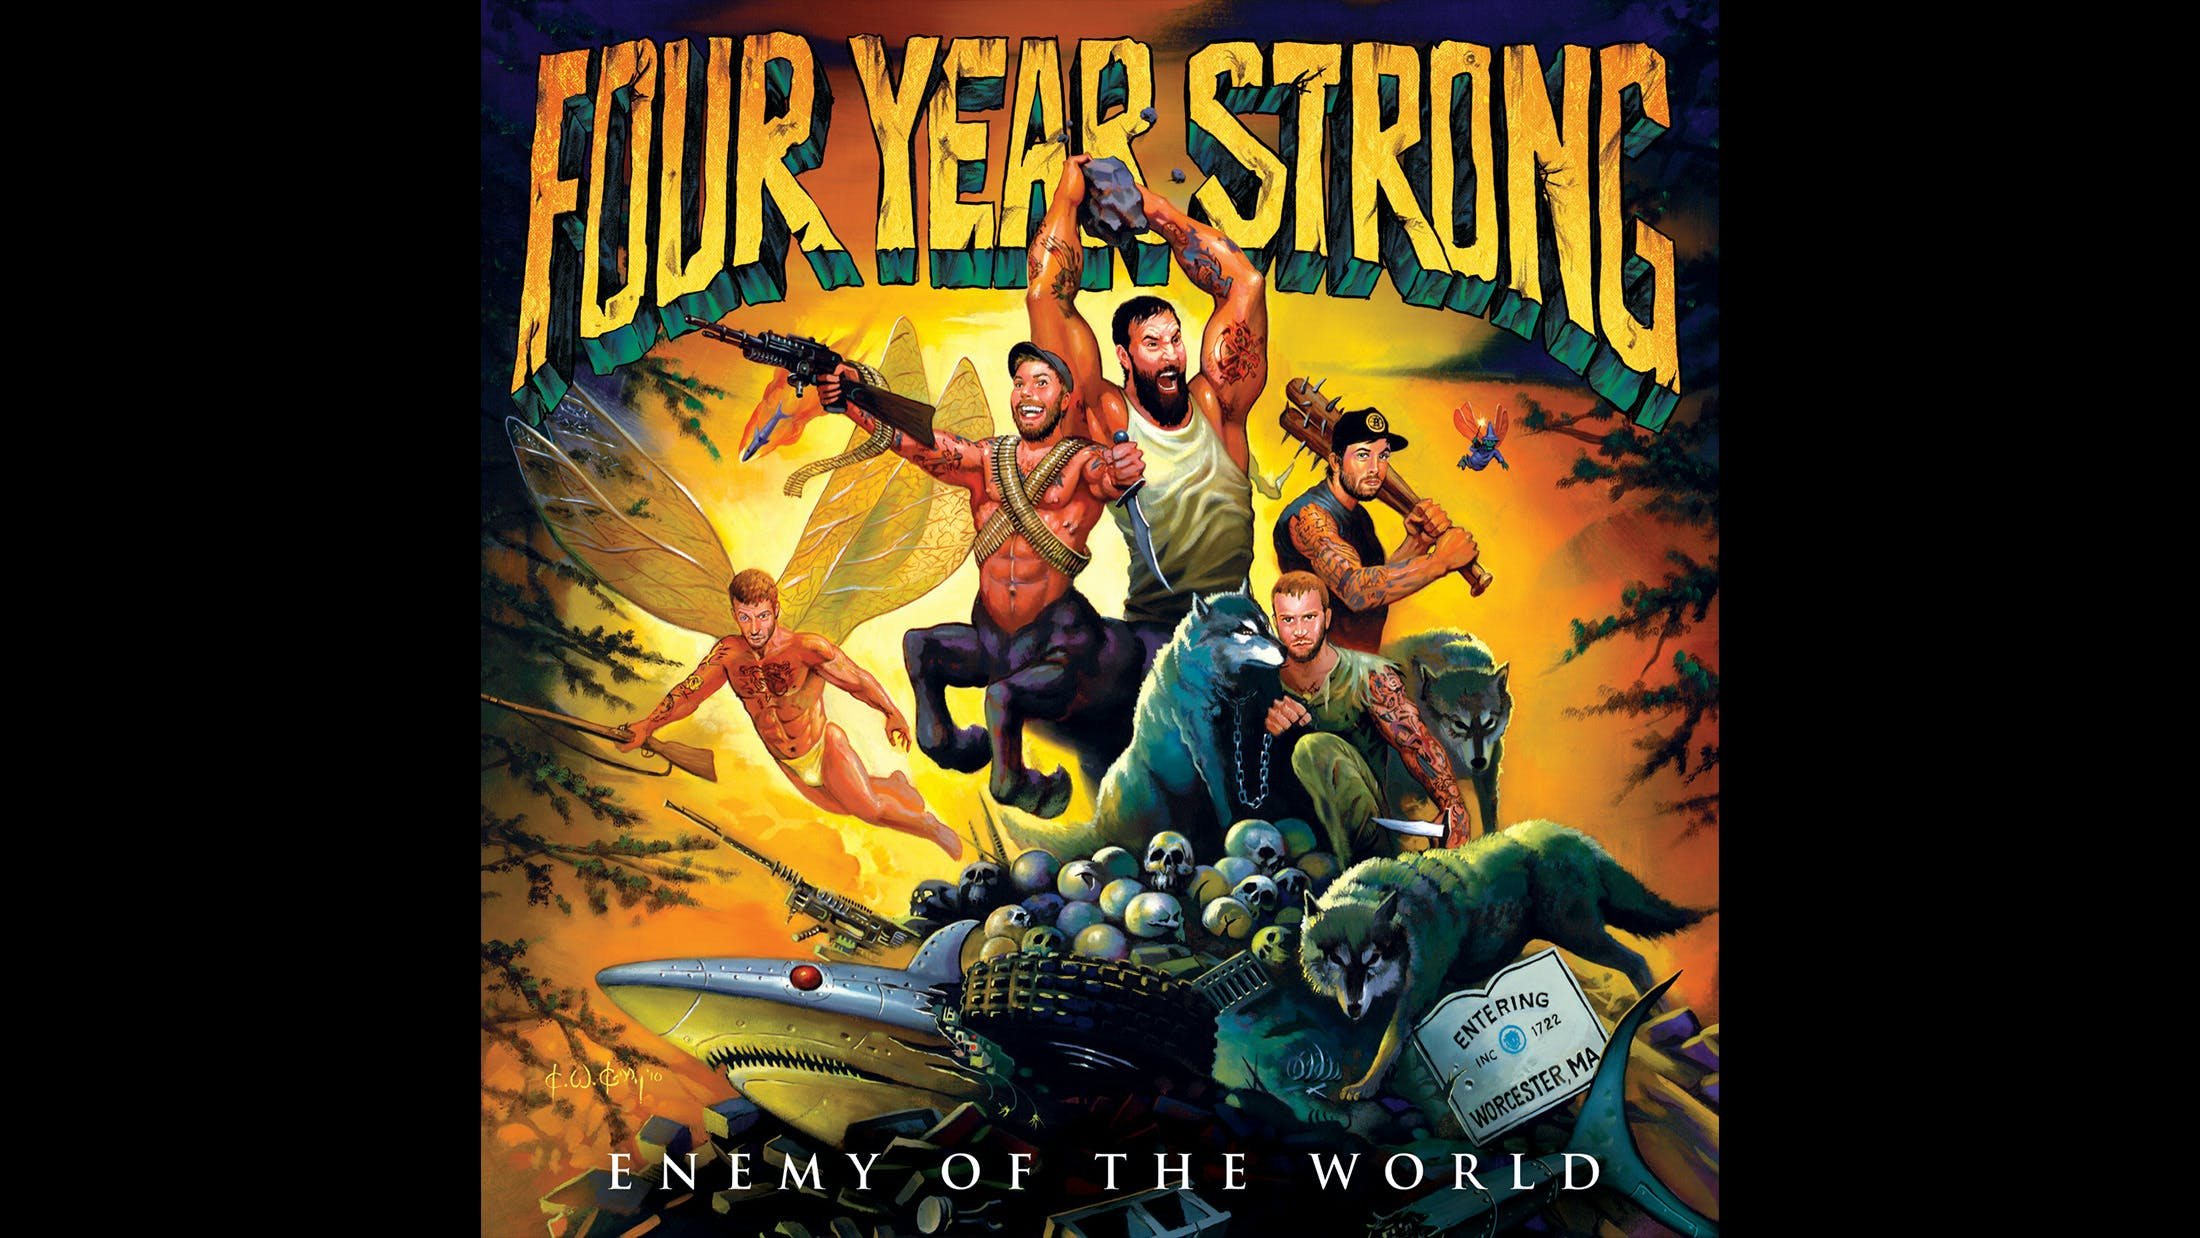 23. Four Year Strong - Enemy Of The World (2010)